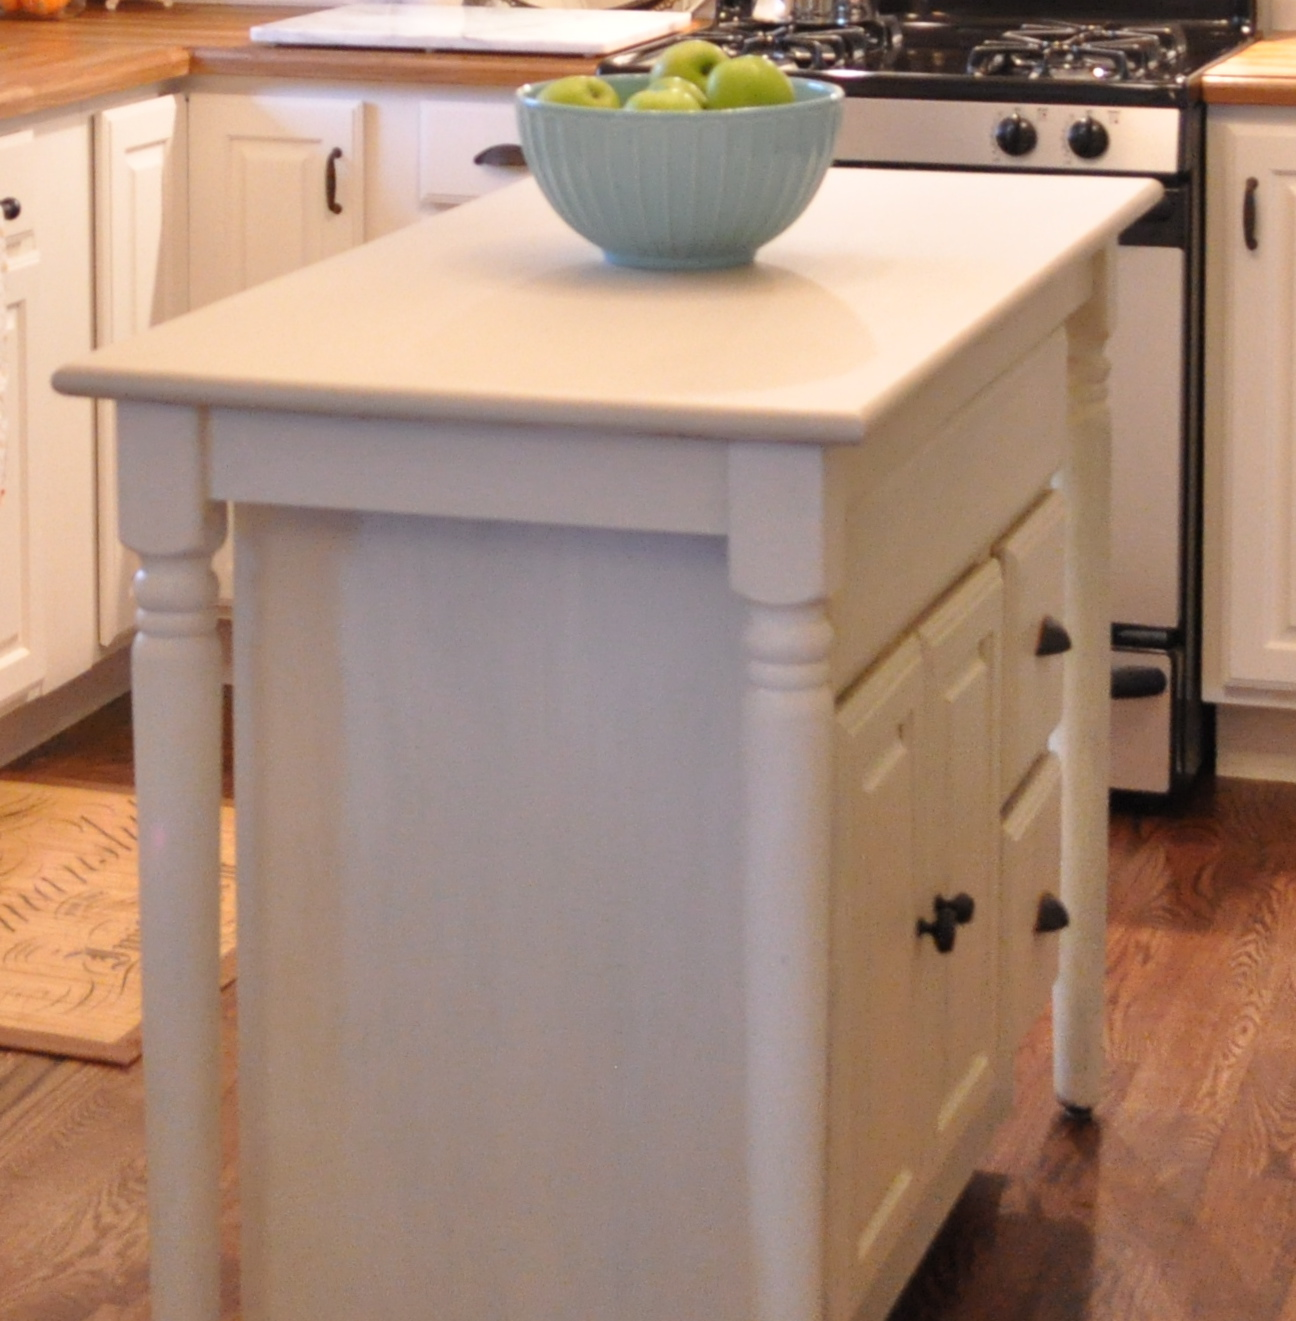 Build kitchen island table - Build An Inexpensive Island With A High Table And Abase Cabinet